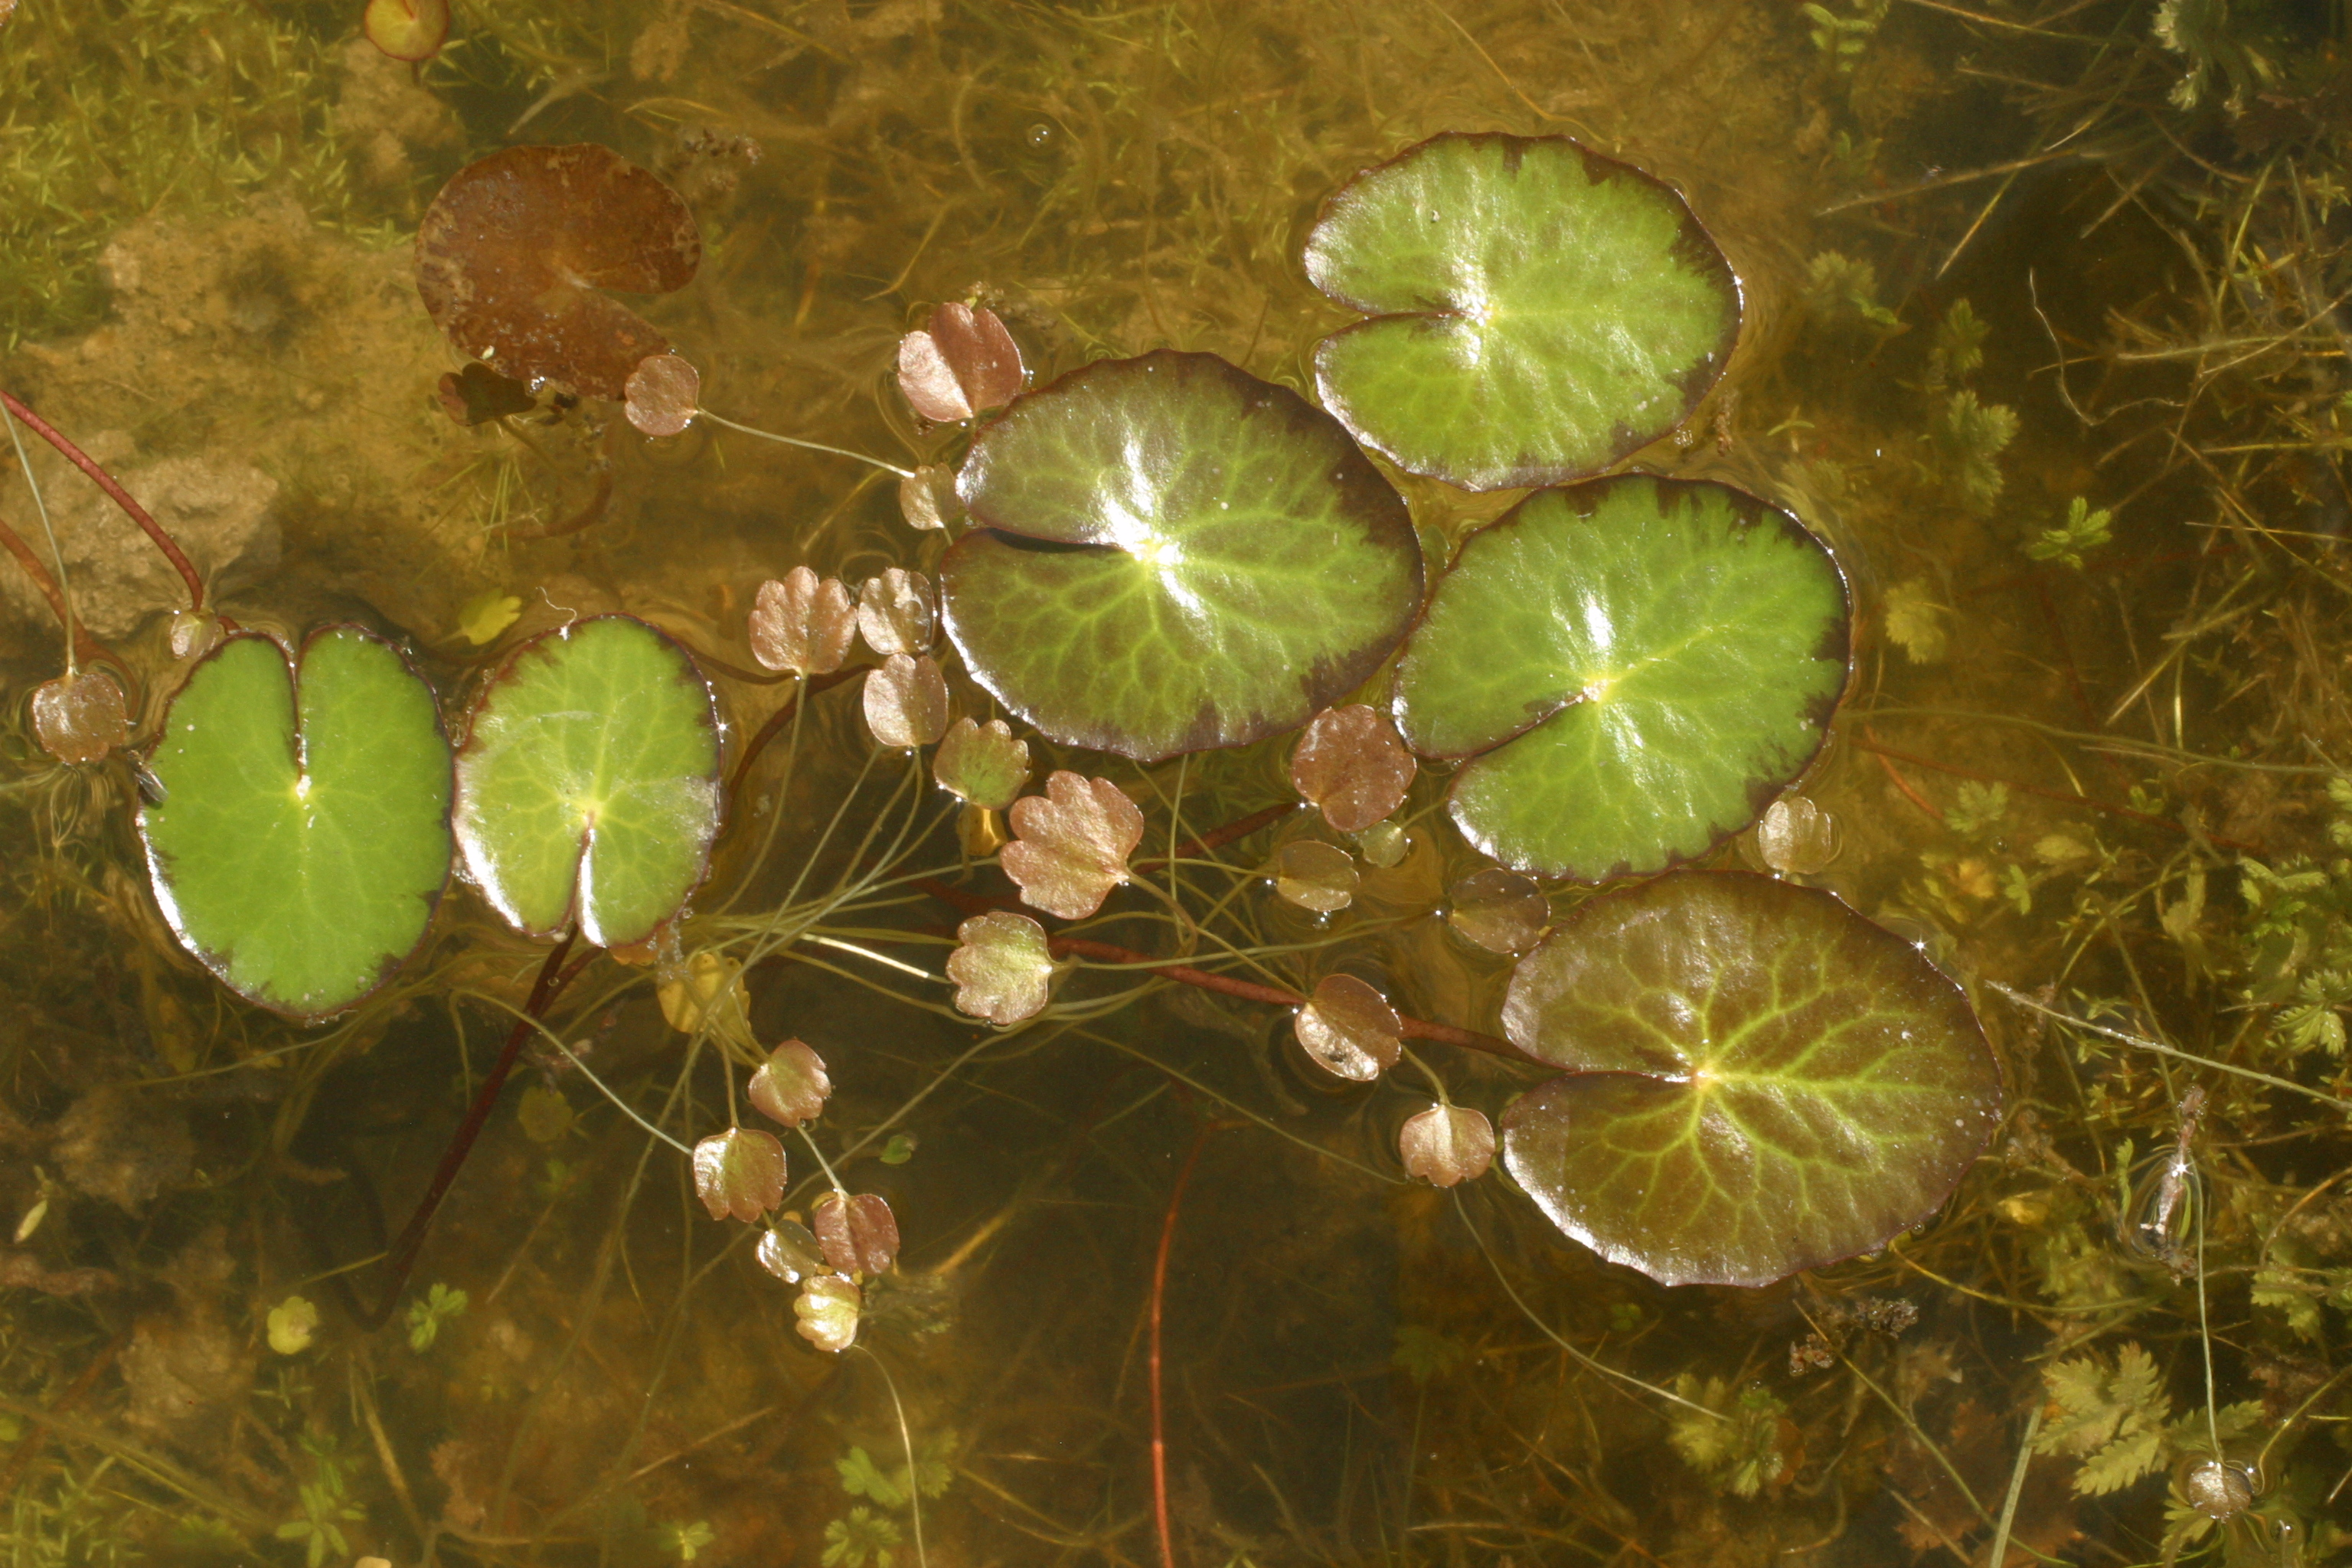 view image: Nymphoides peltata (S. G. Gmel.) O. Kuntze